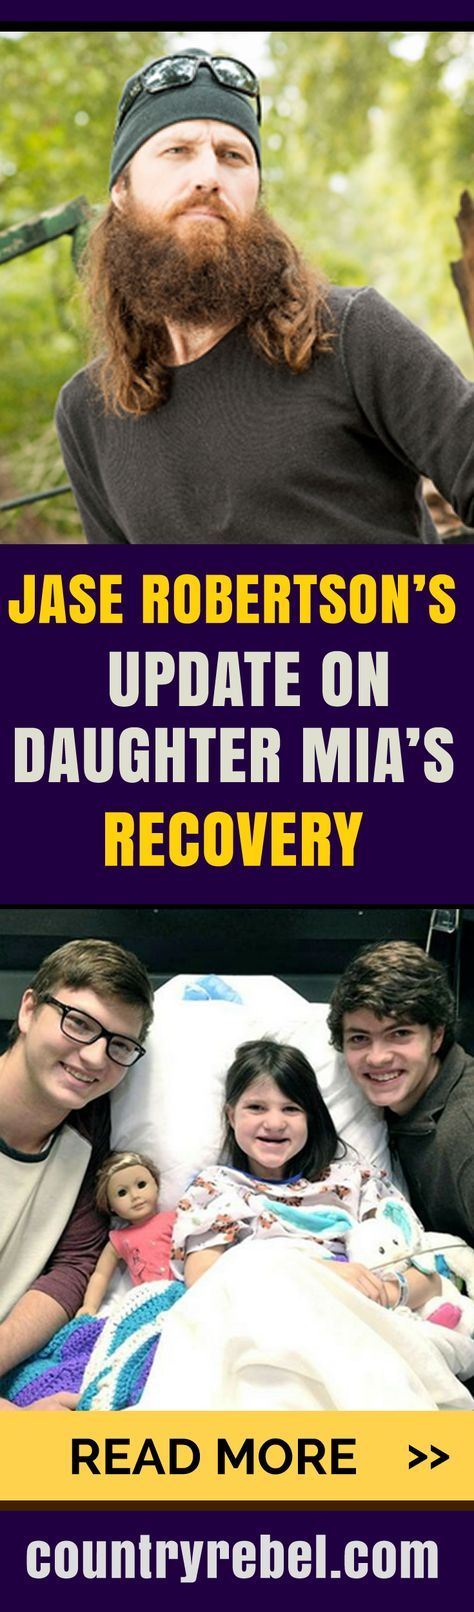 Duck Dynasty Fans - Jase Robertson Gives Update on Daughter Mia's Recovery